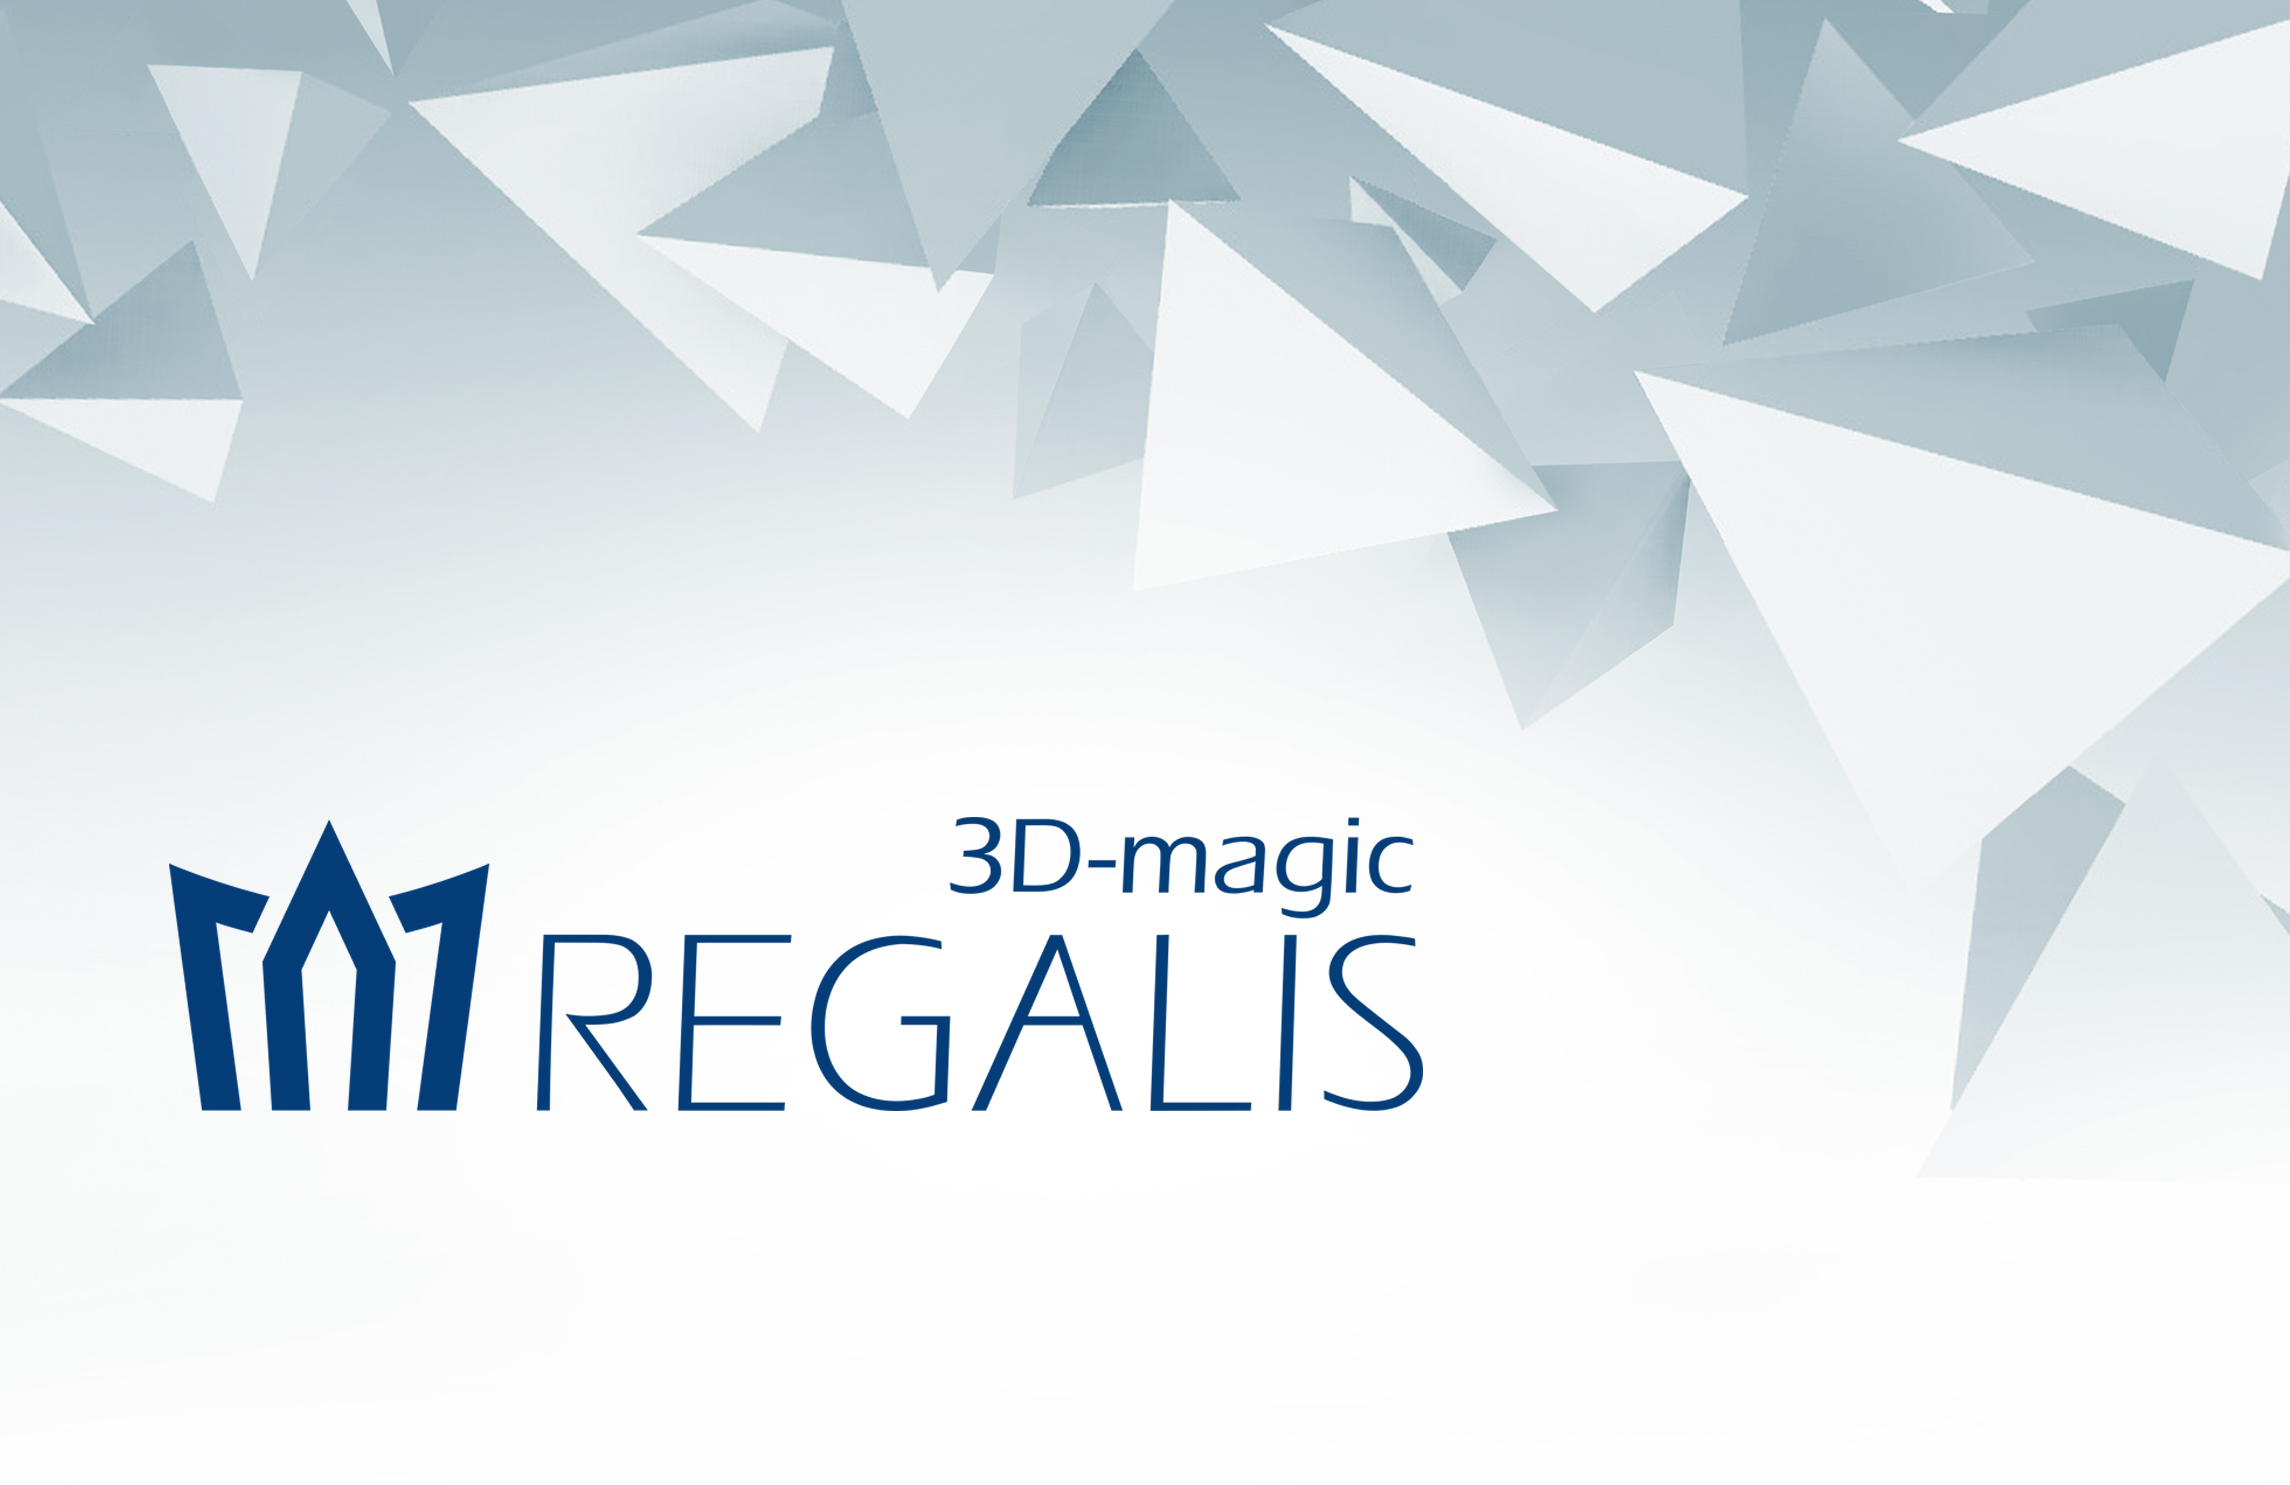 3D-Magic REGALIS